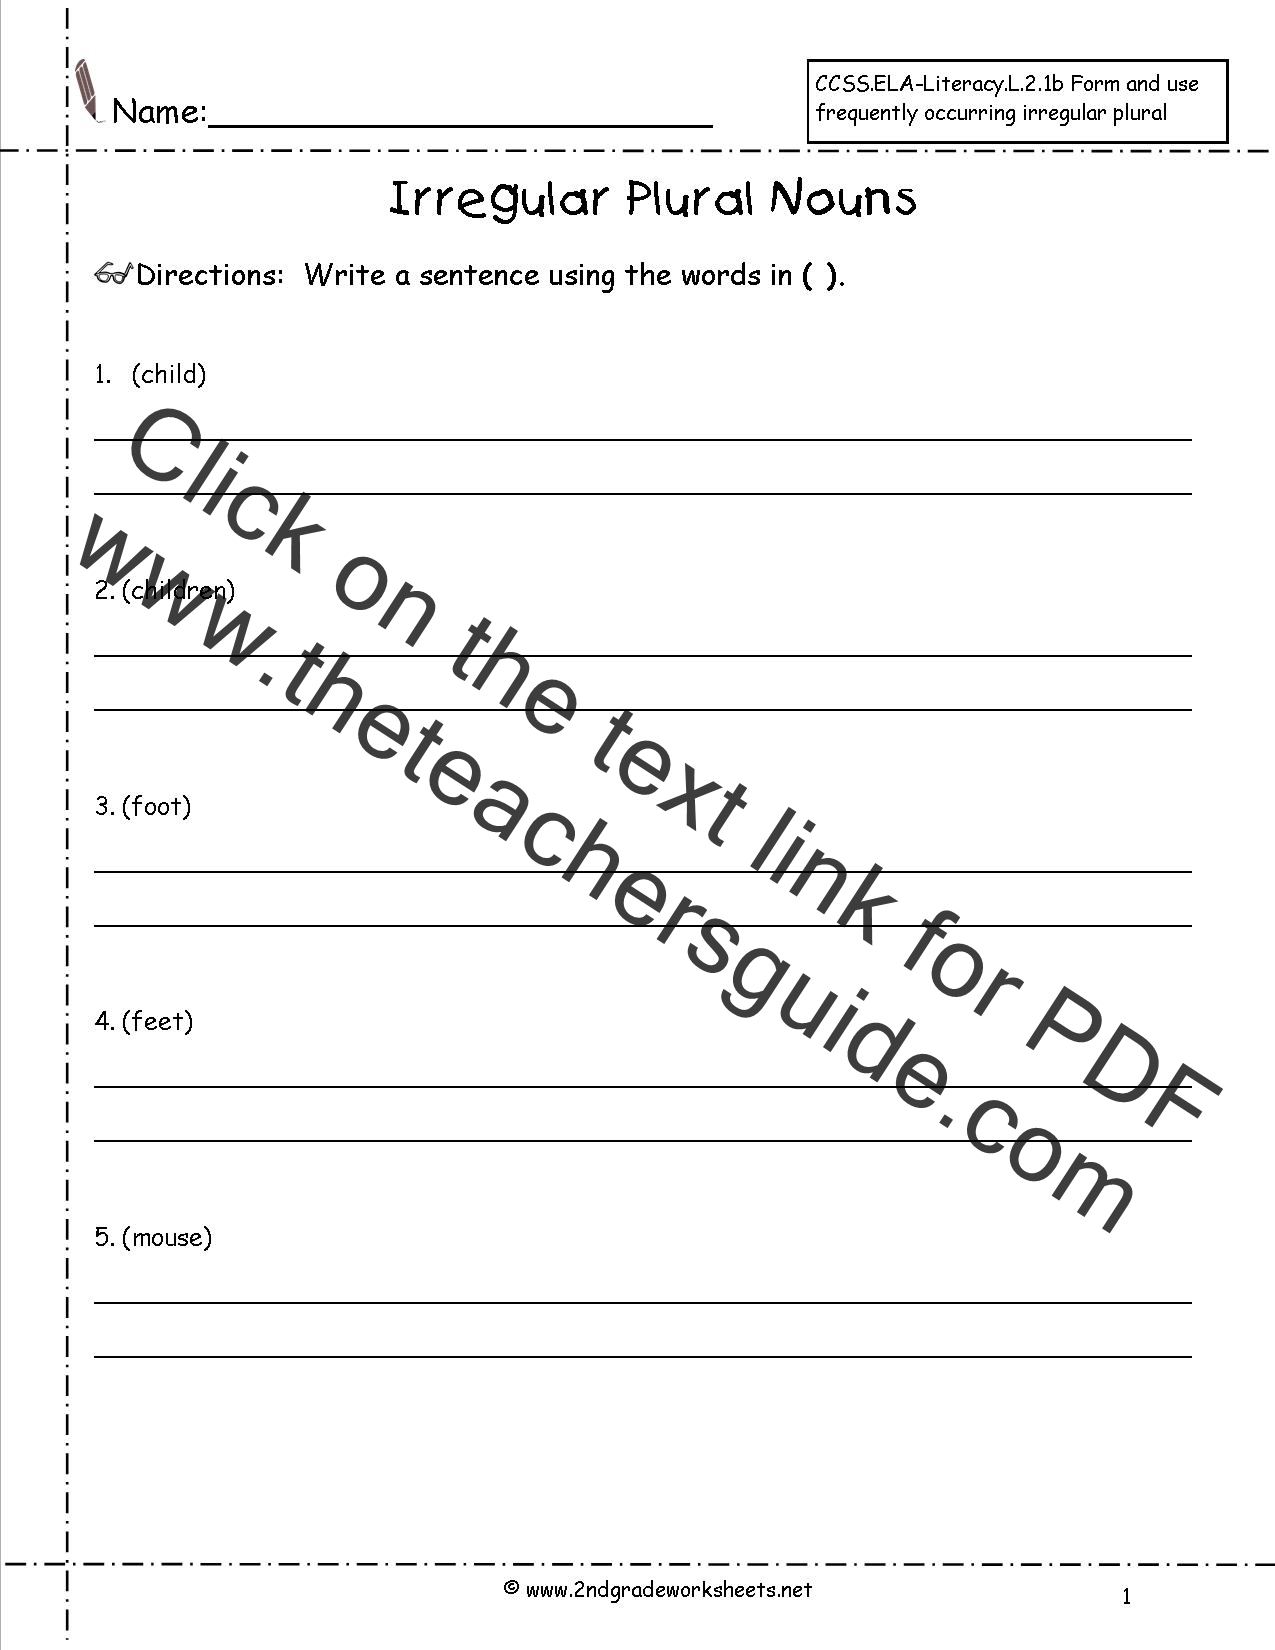 Worksheets Irregular Plurals Worksheet singular and plural nouns worksheets irregular worksheet